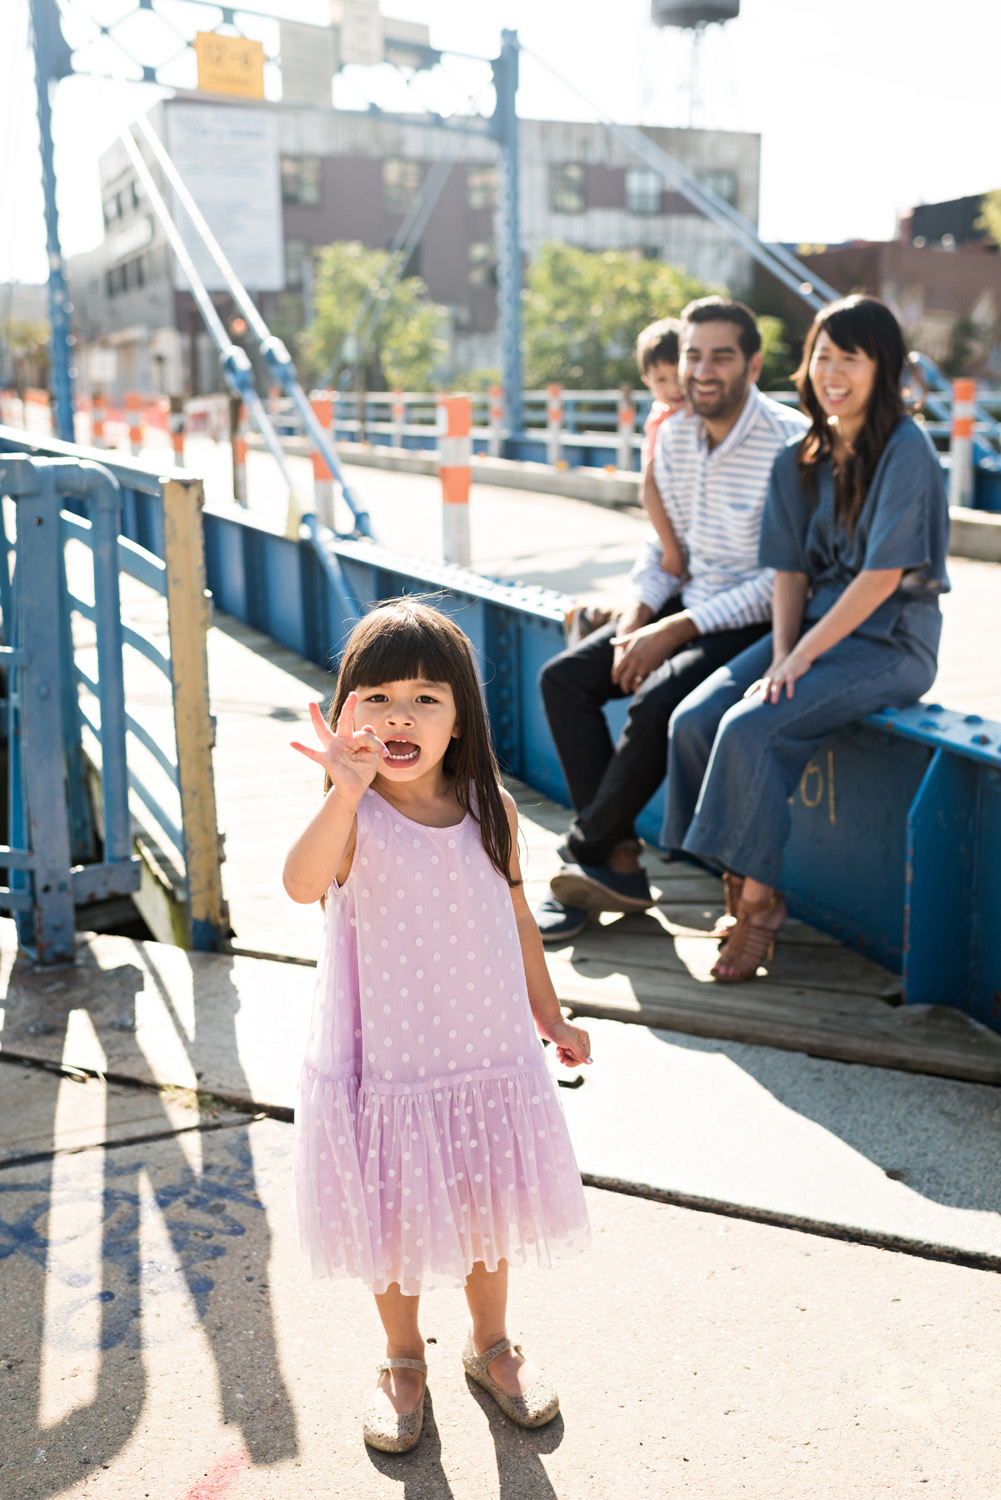 Gowanus Family Photographer-09302018_385.jpg